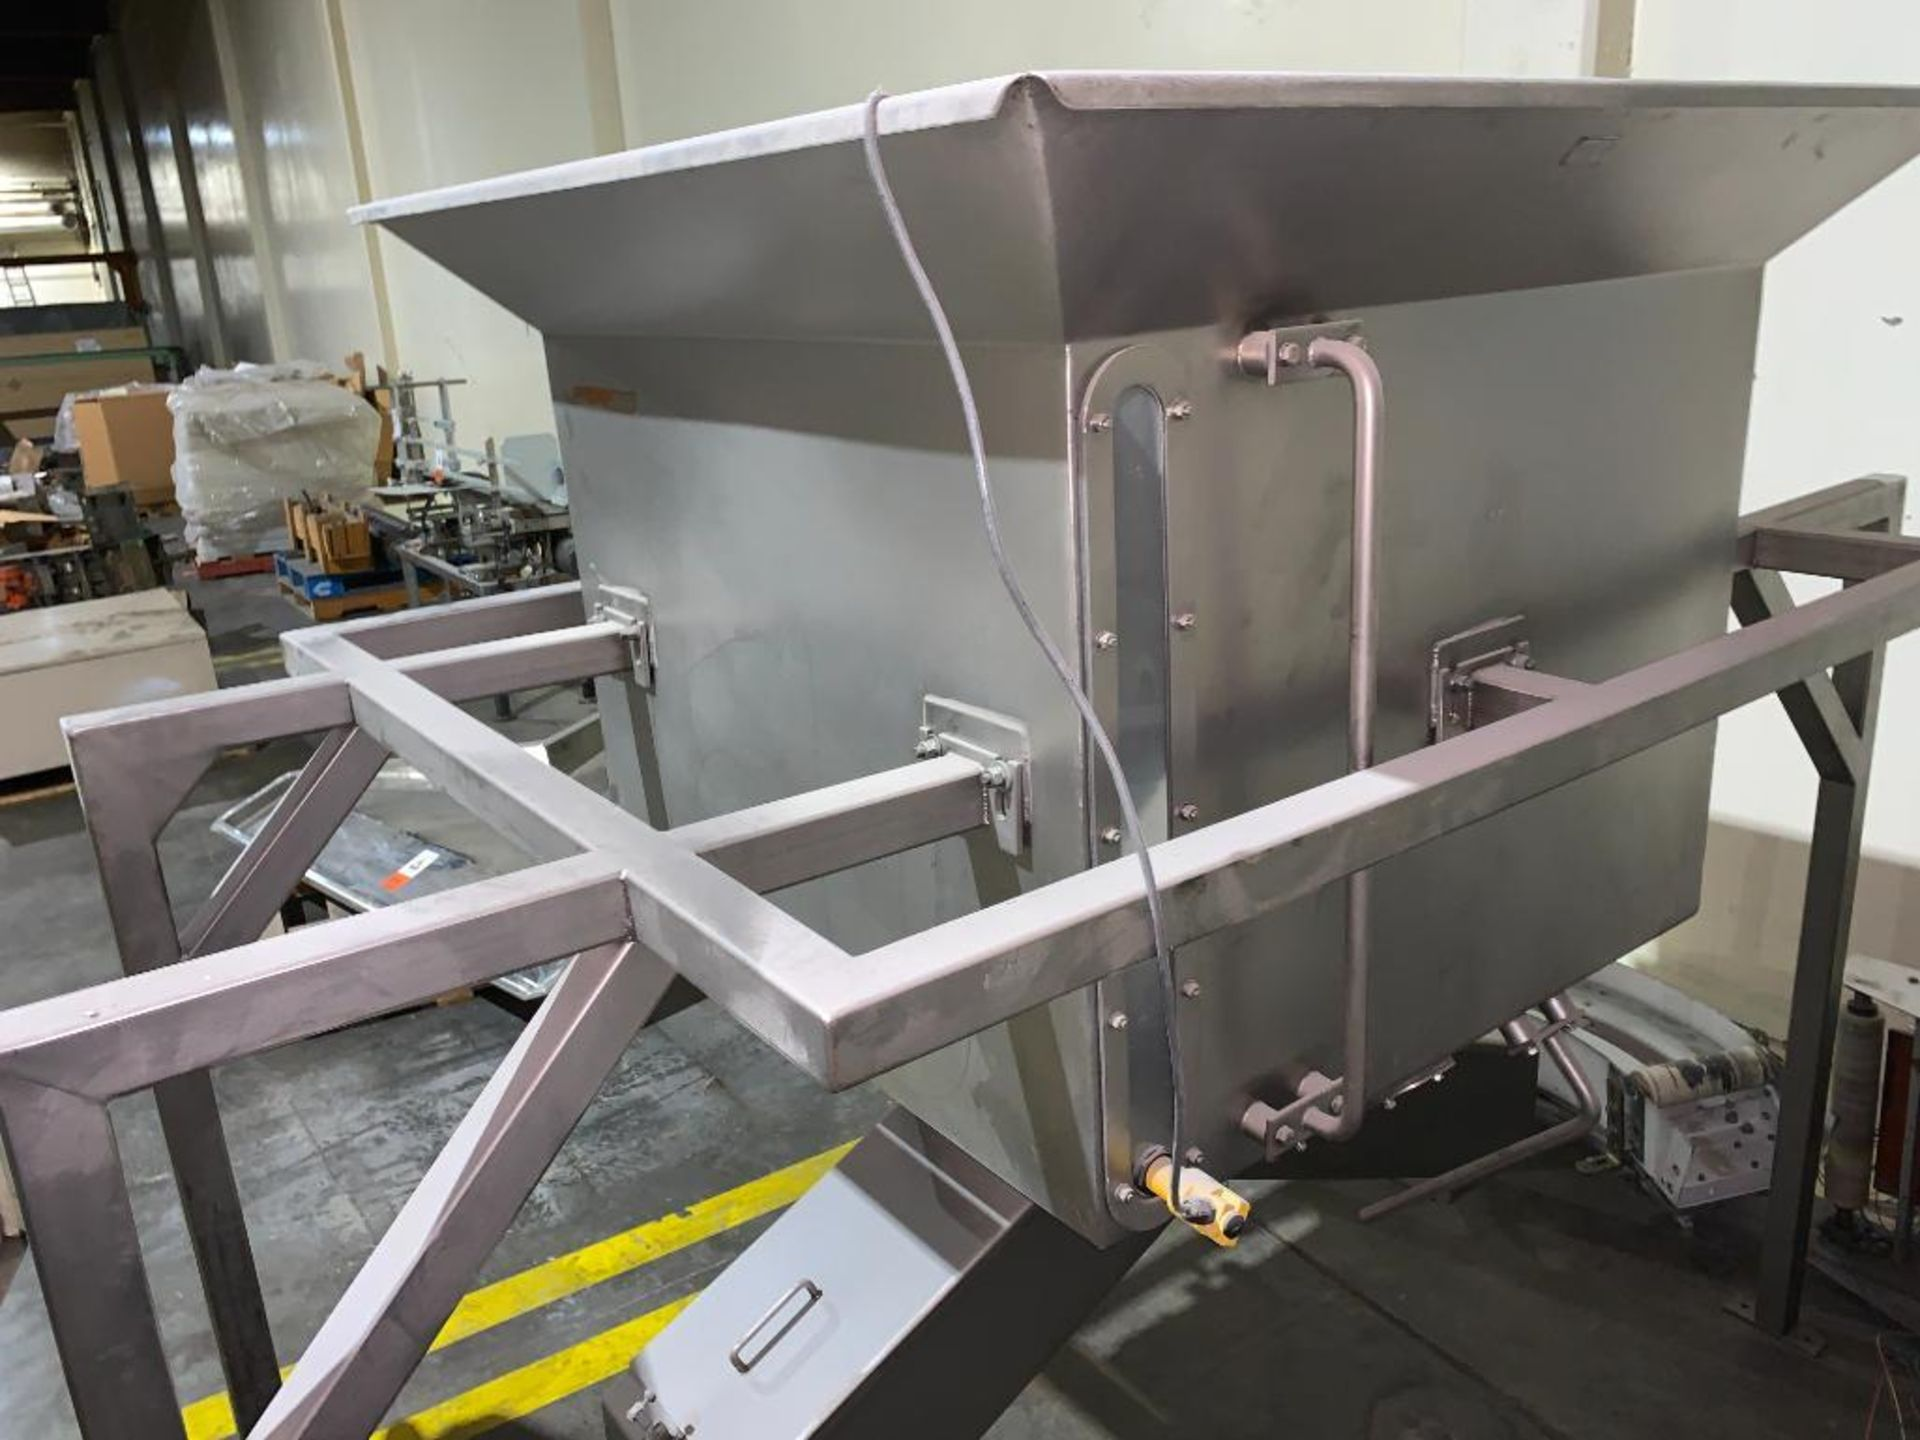 stainless steel dual chute hopper - Image 3 of 7